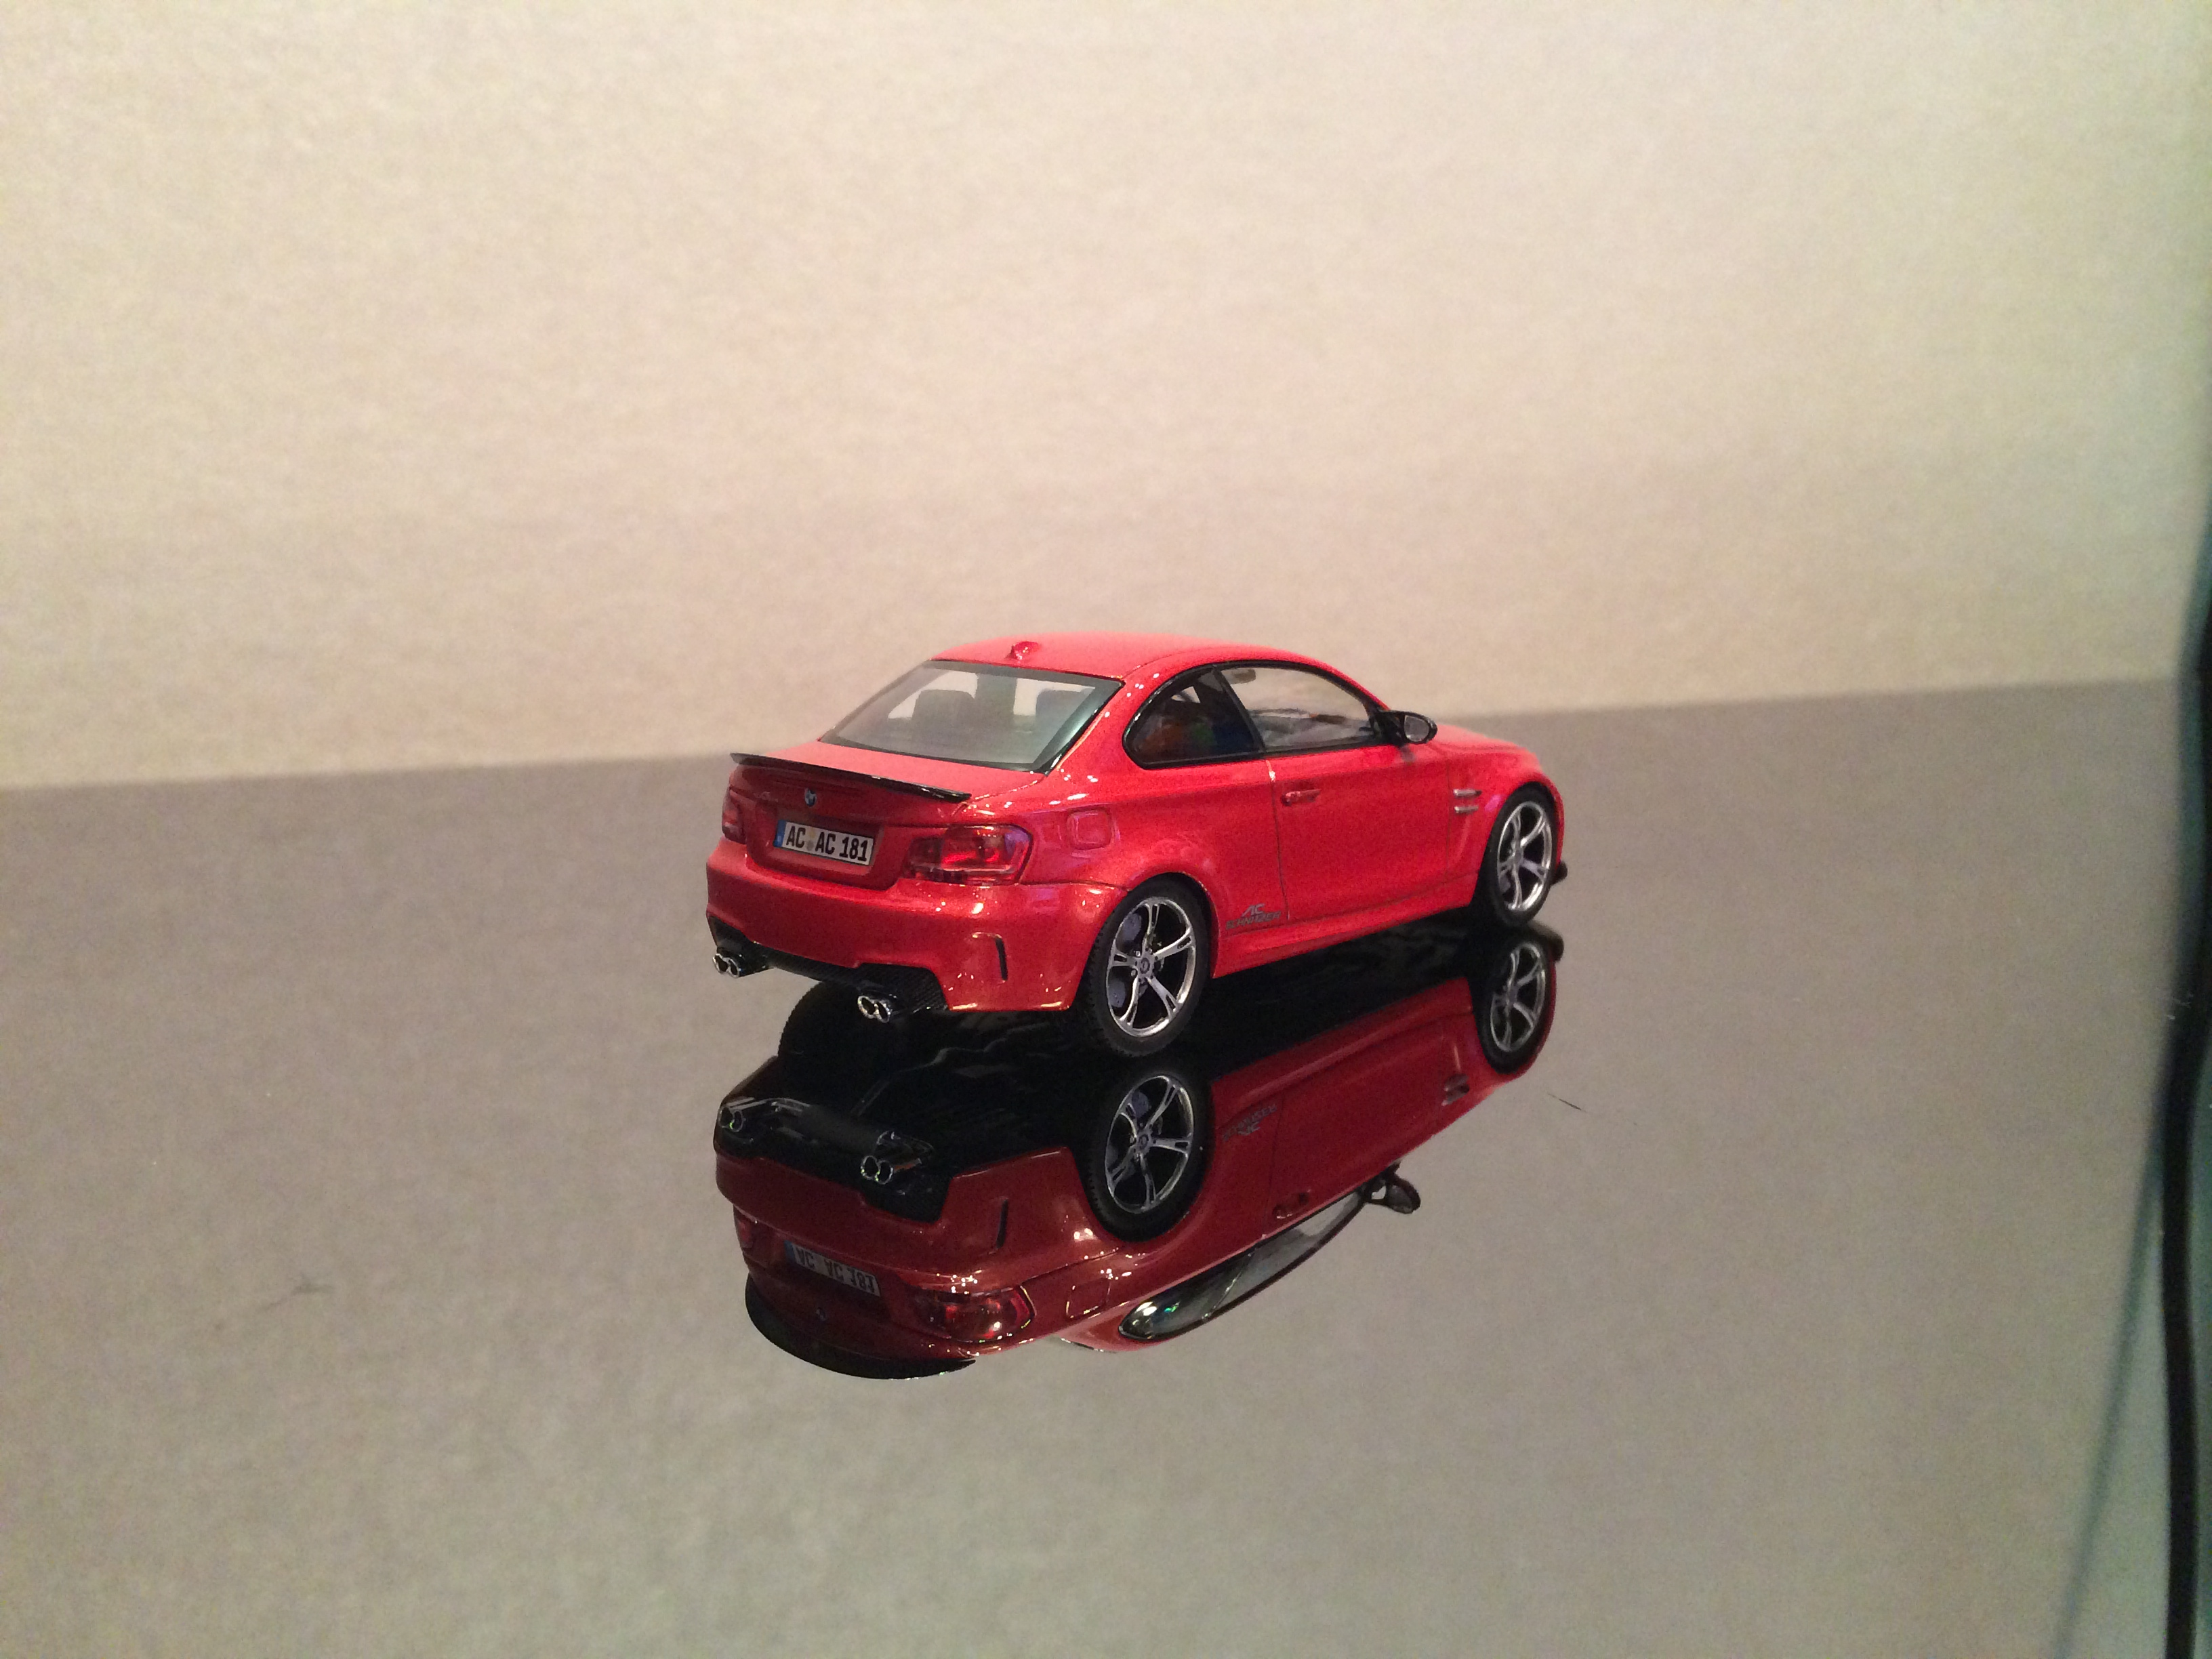 BMW 1M coupe (E82) ACS 1 Sport, valencia orange, le 1 of 528pcs. (minichamps)